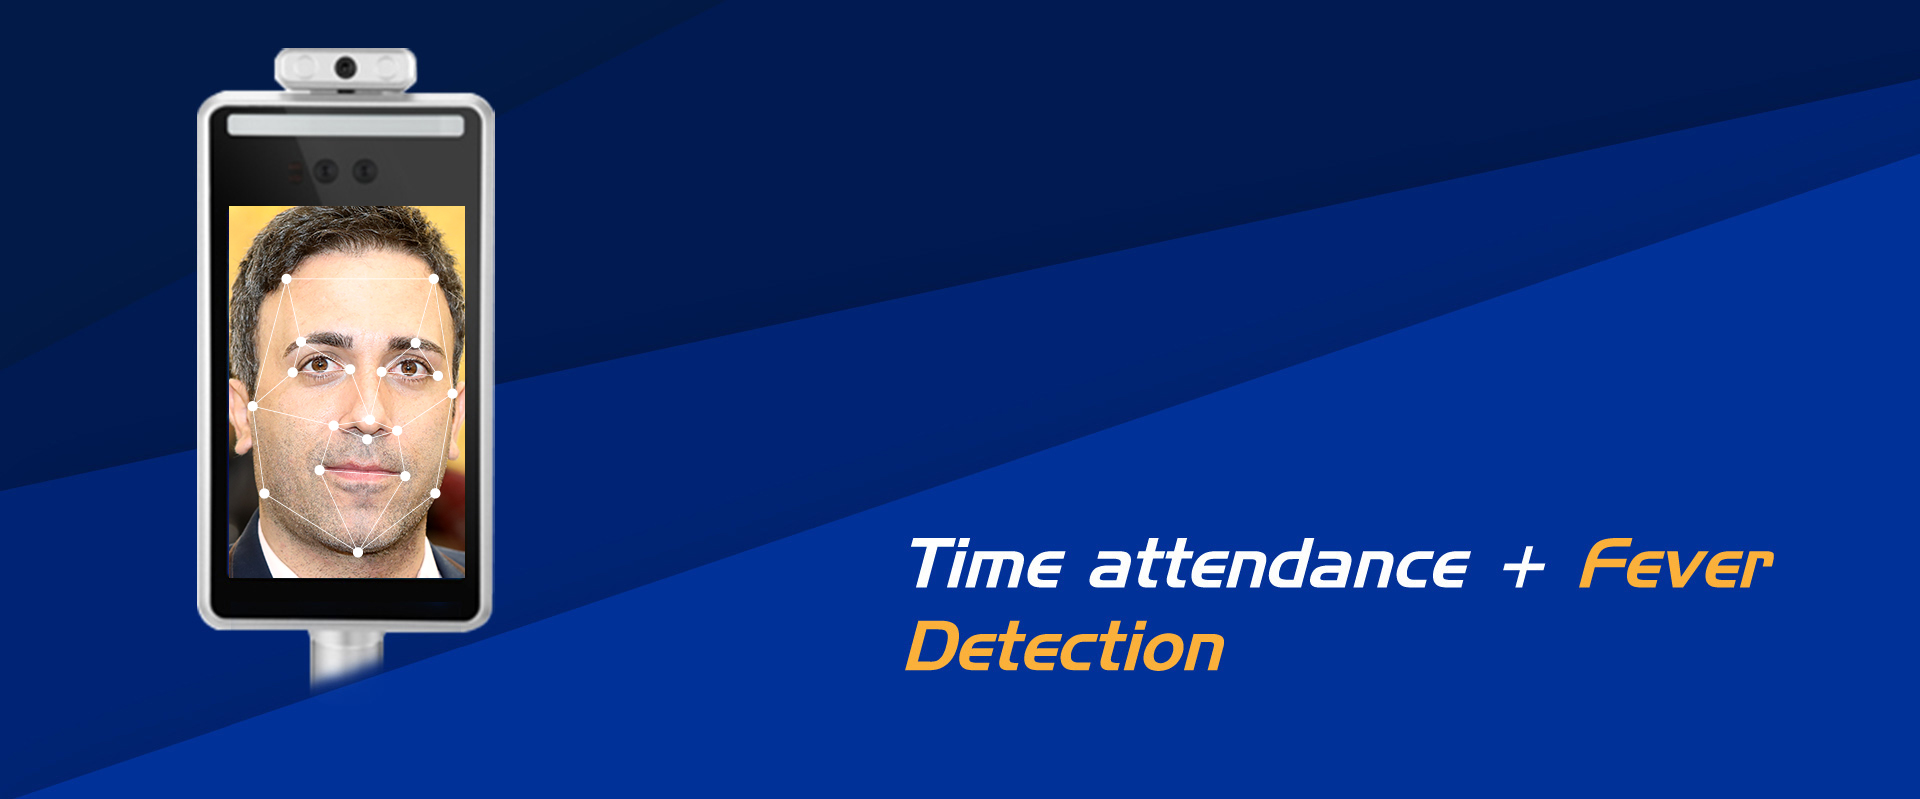 Time attendance Fever Detection